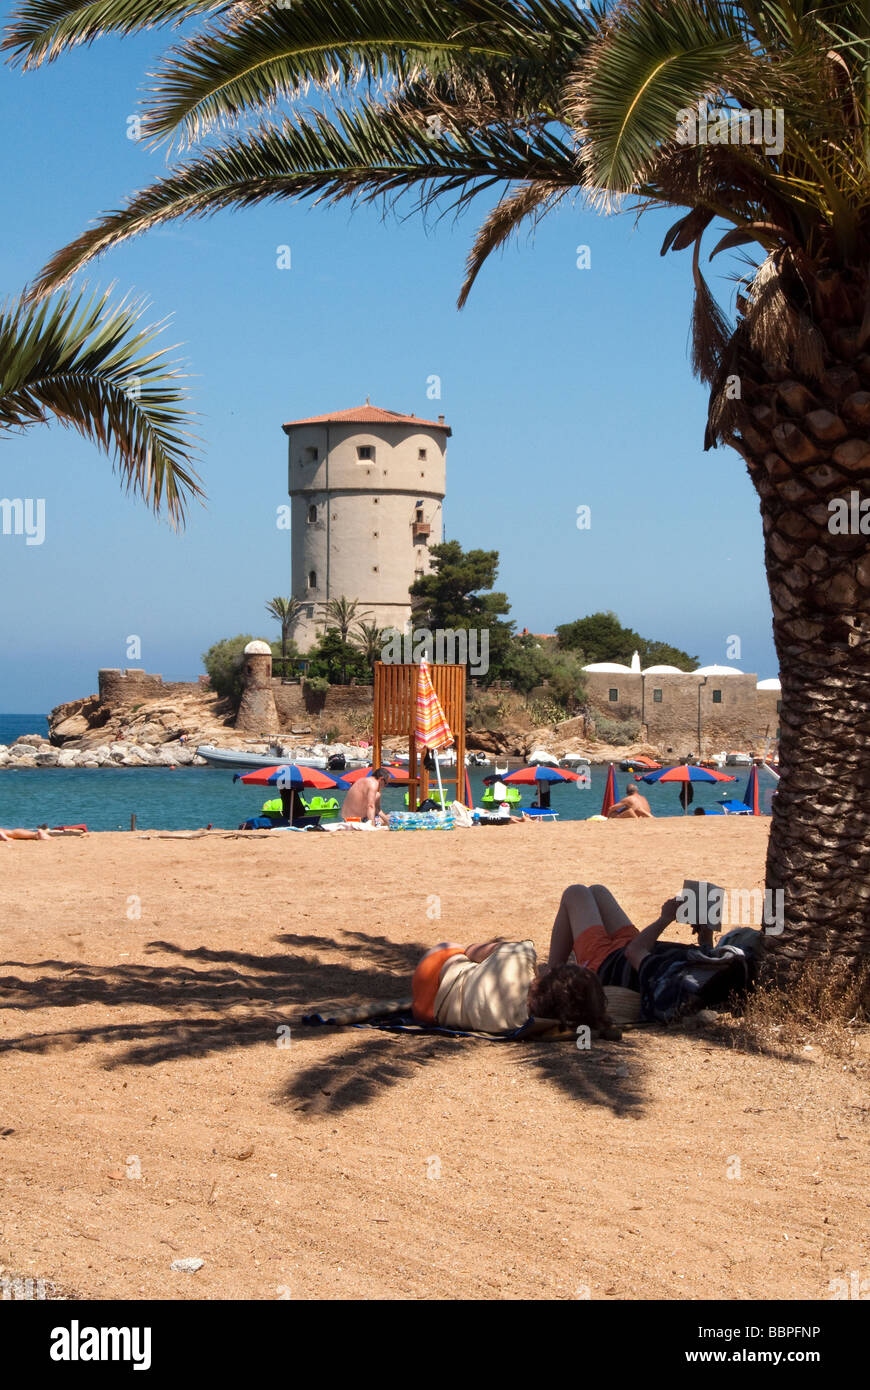 A couple laze reading books in the shade of palm tree at Giglio Campese the beach on the Island of Giglio or Isola - Stock Image